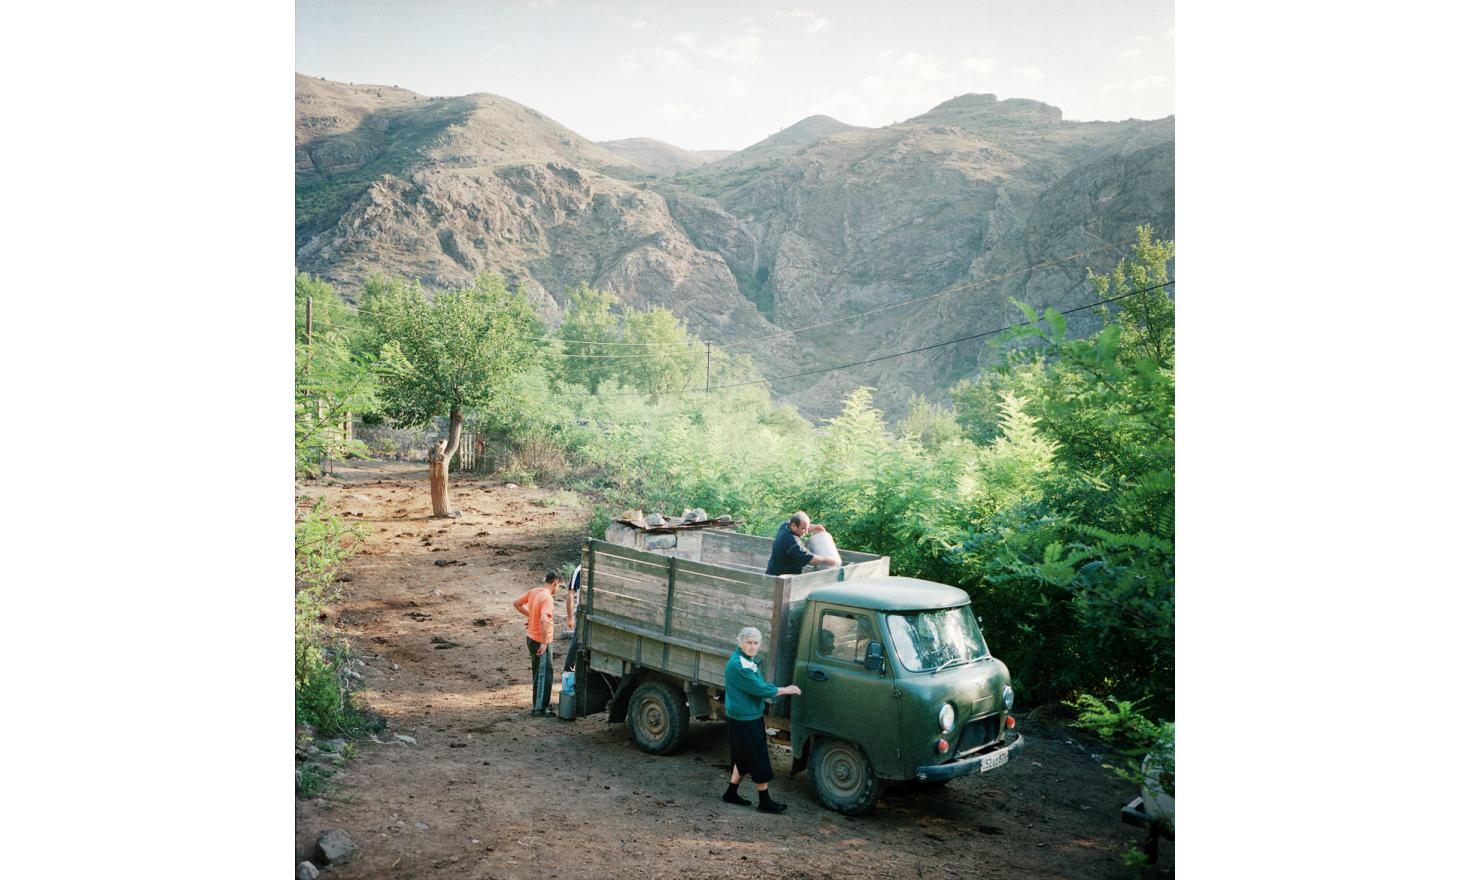 The truck collecting milk in isolated villages in the mountains of Kashatagh (Lachin) province, close to the border with Armenia.